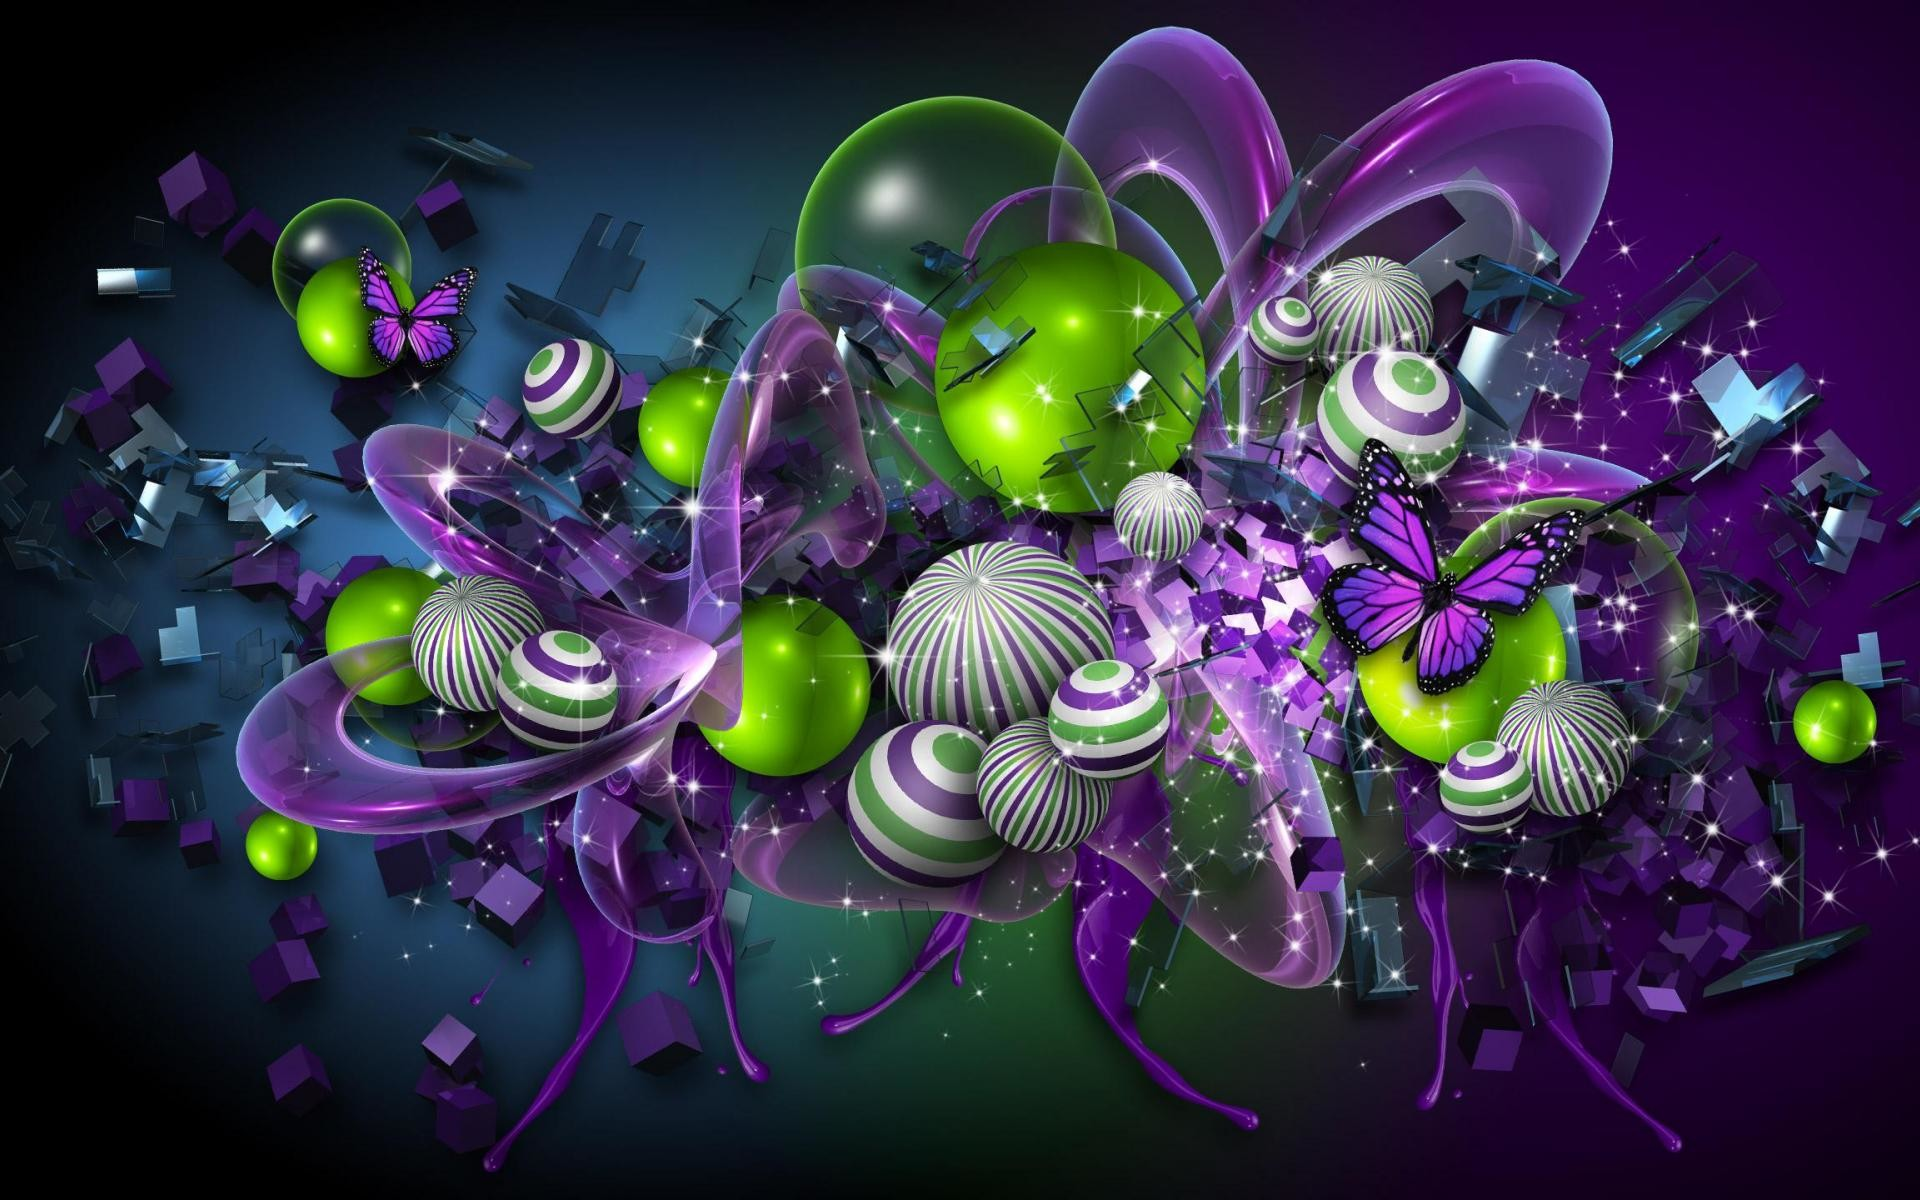 Watery Desktop 3d Animated Wallpaper Screensaver Download 3d Moving Wallpaper For Phone 49 Images